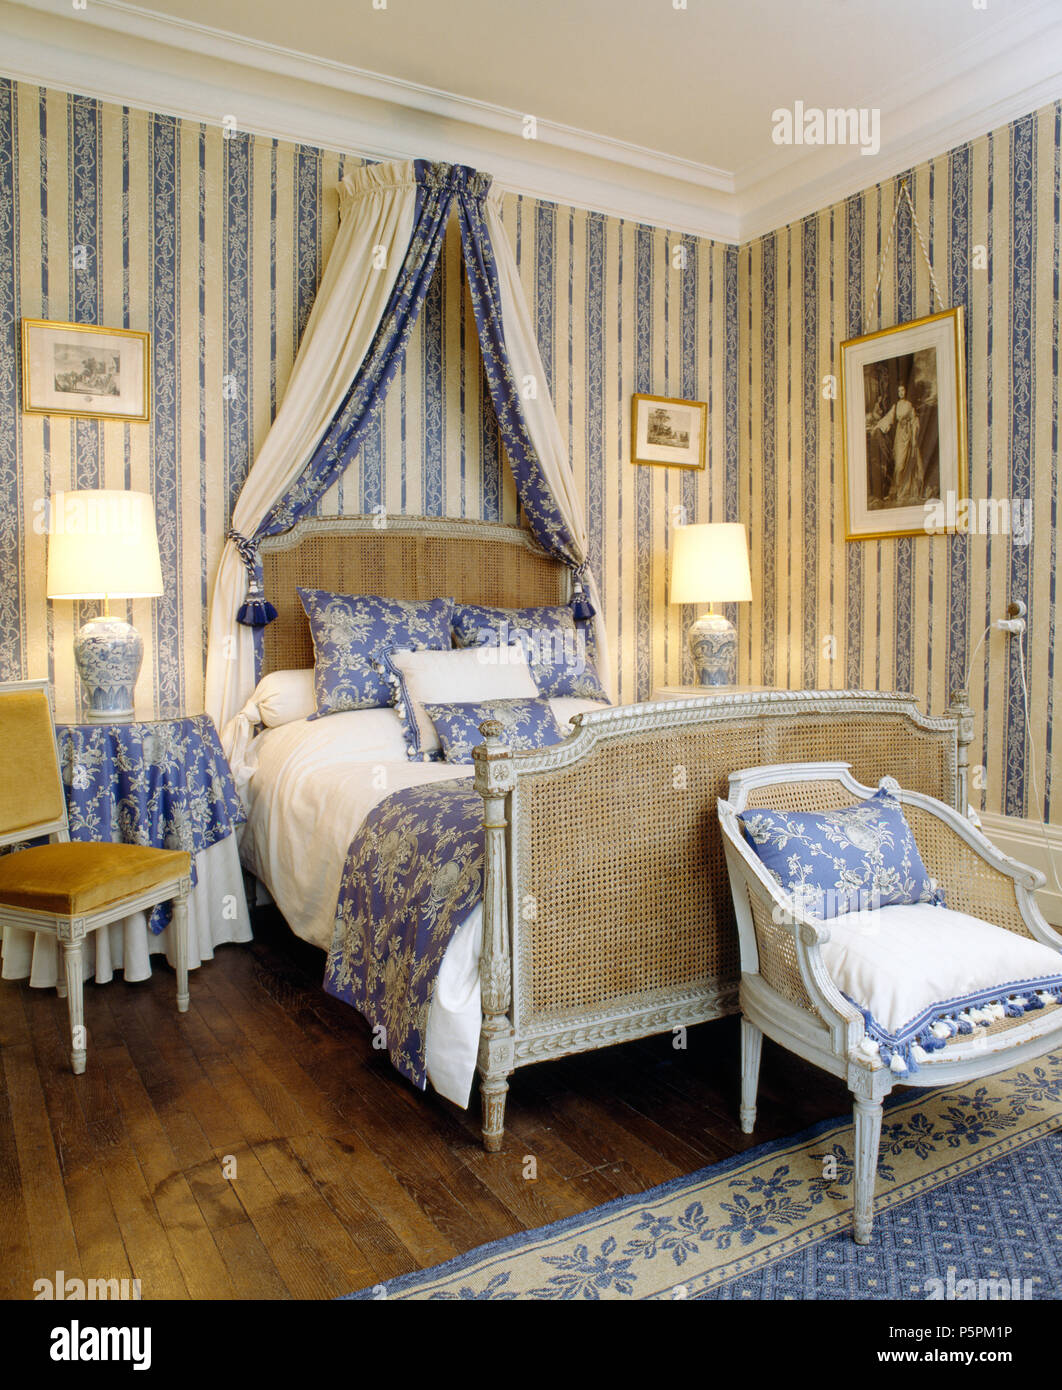 Antique Bergere Bed With Blue Drapes In French Country Bedroom With Blue White Striped Wallpaper And Lighted Lamps Stock Photo Alamy